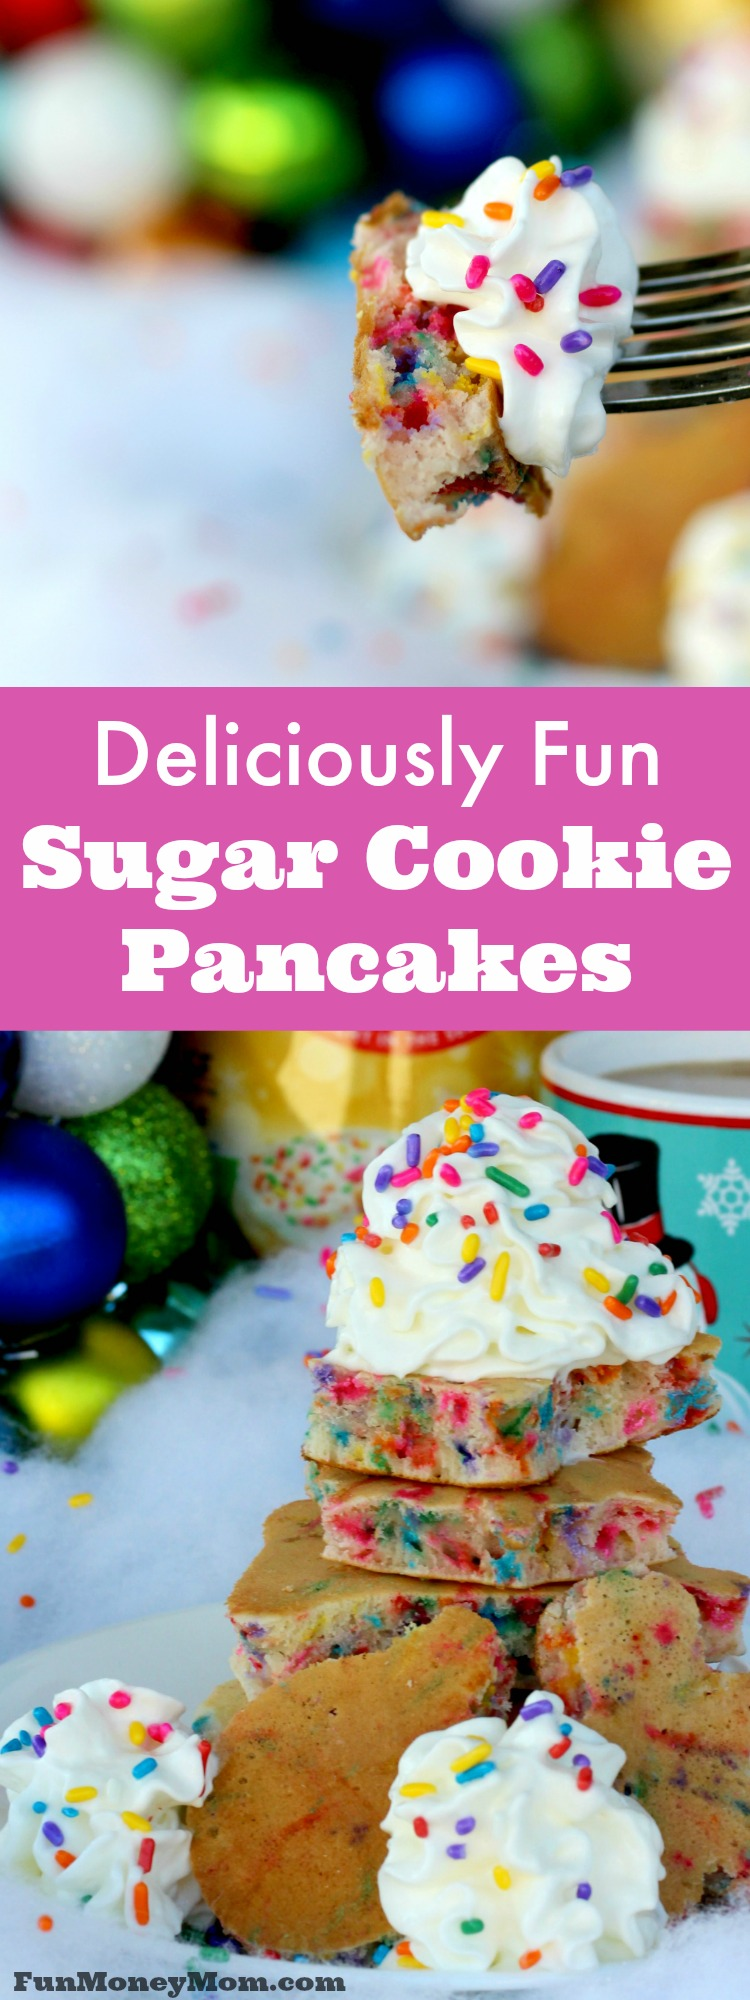 Make breakfast fun with these deliciously sweet Sugar Cookie Pancakes! It's the perfect kid food! #DelightfulMoments @Walmart #ad